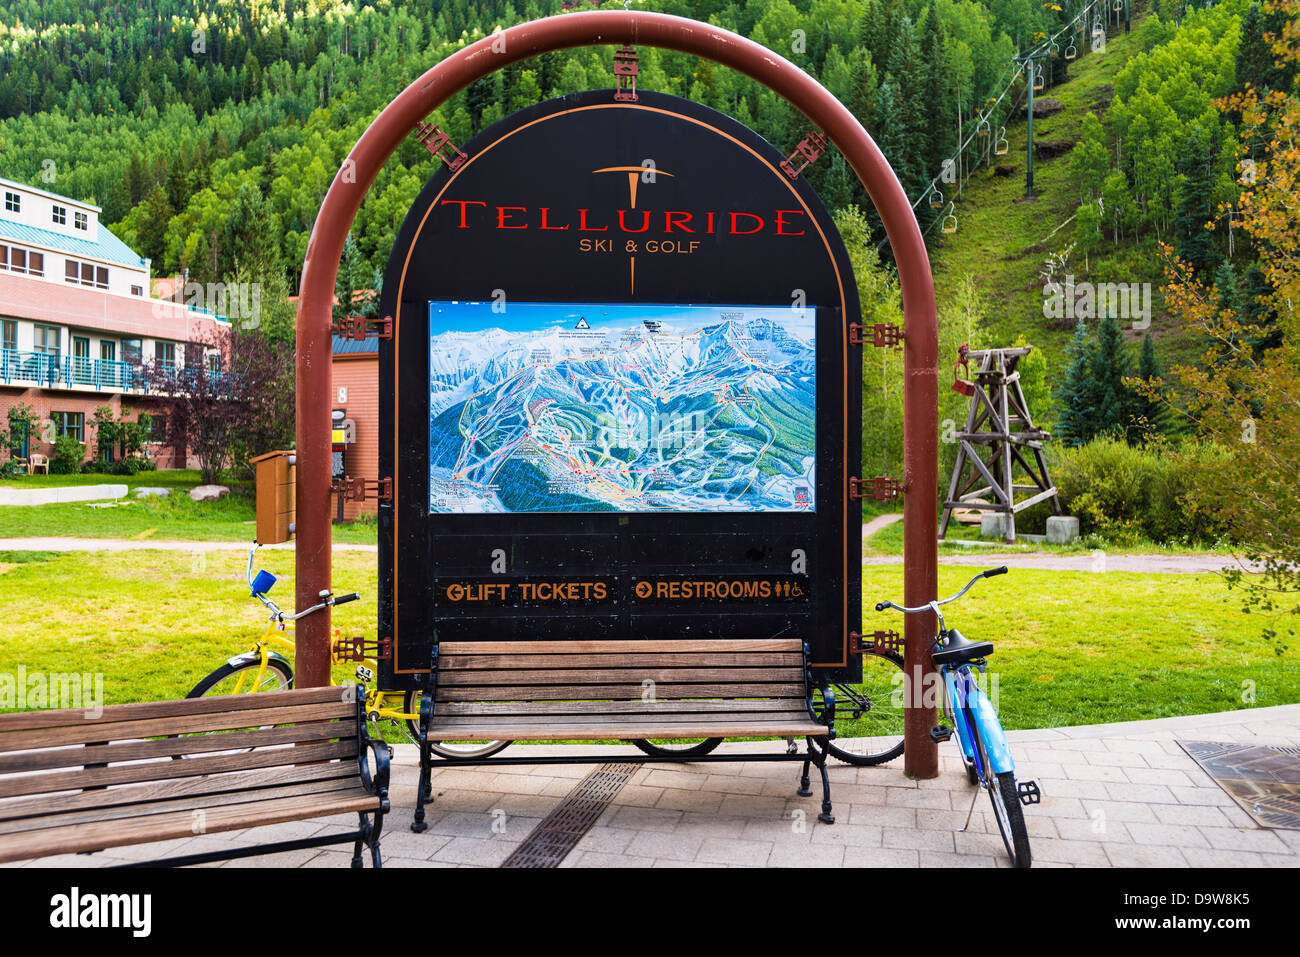 Ski resort trail map and chairlift, Telluride, Colorado USA ...